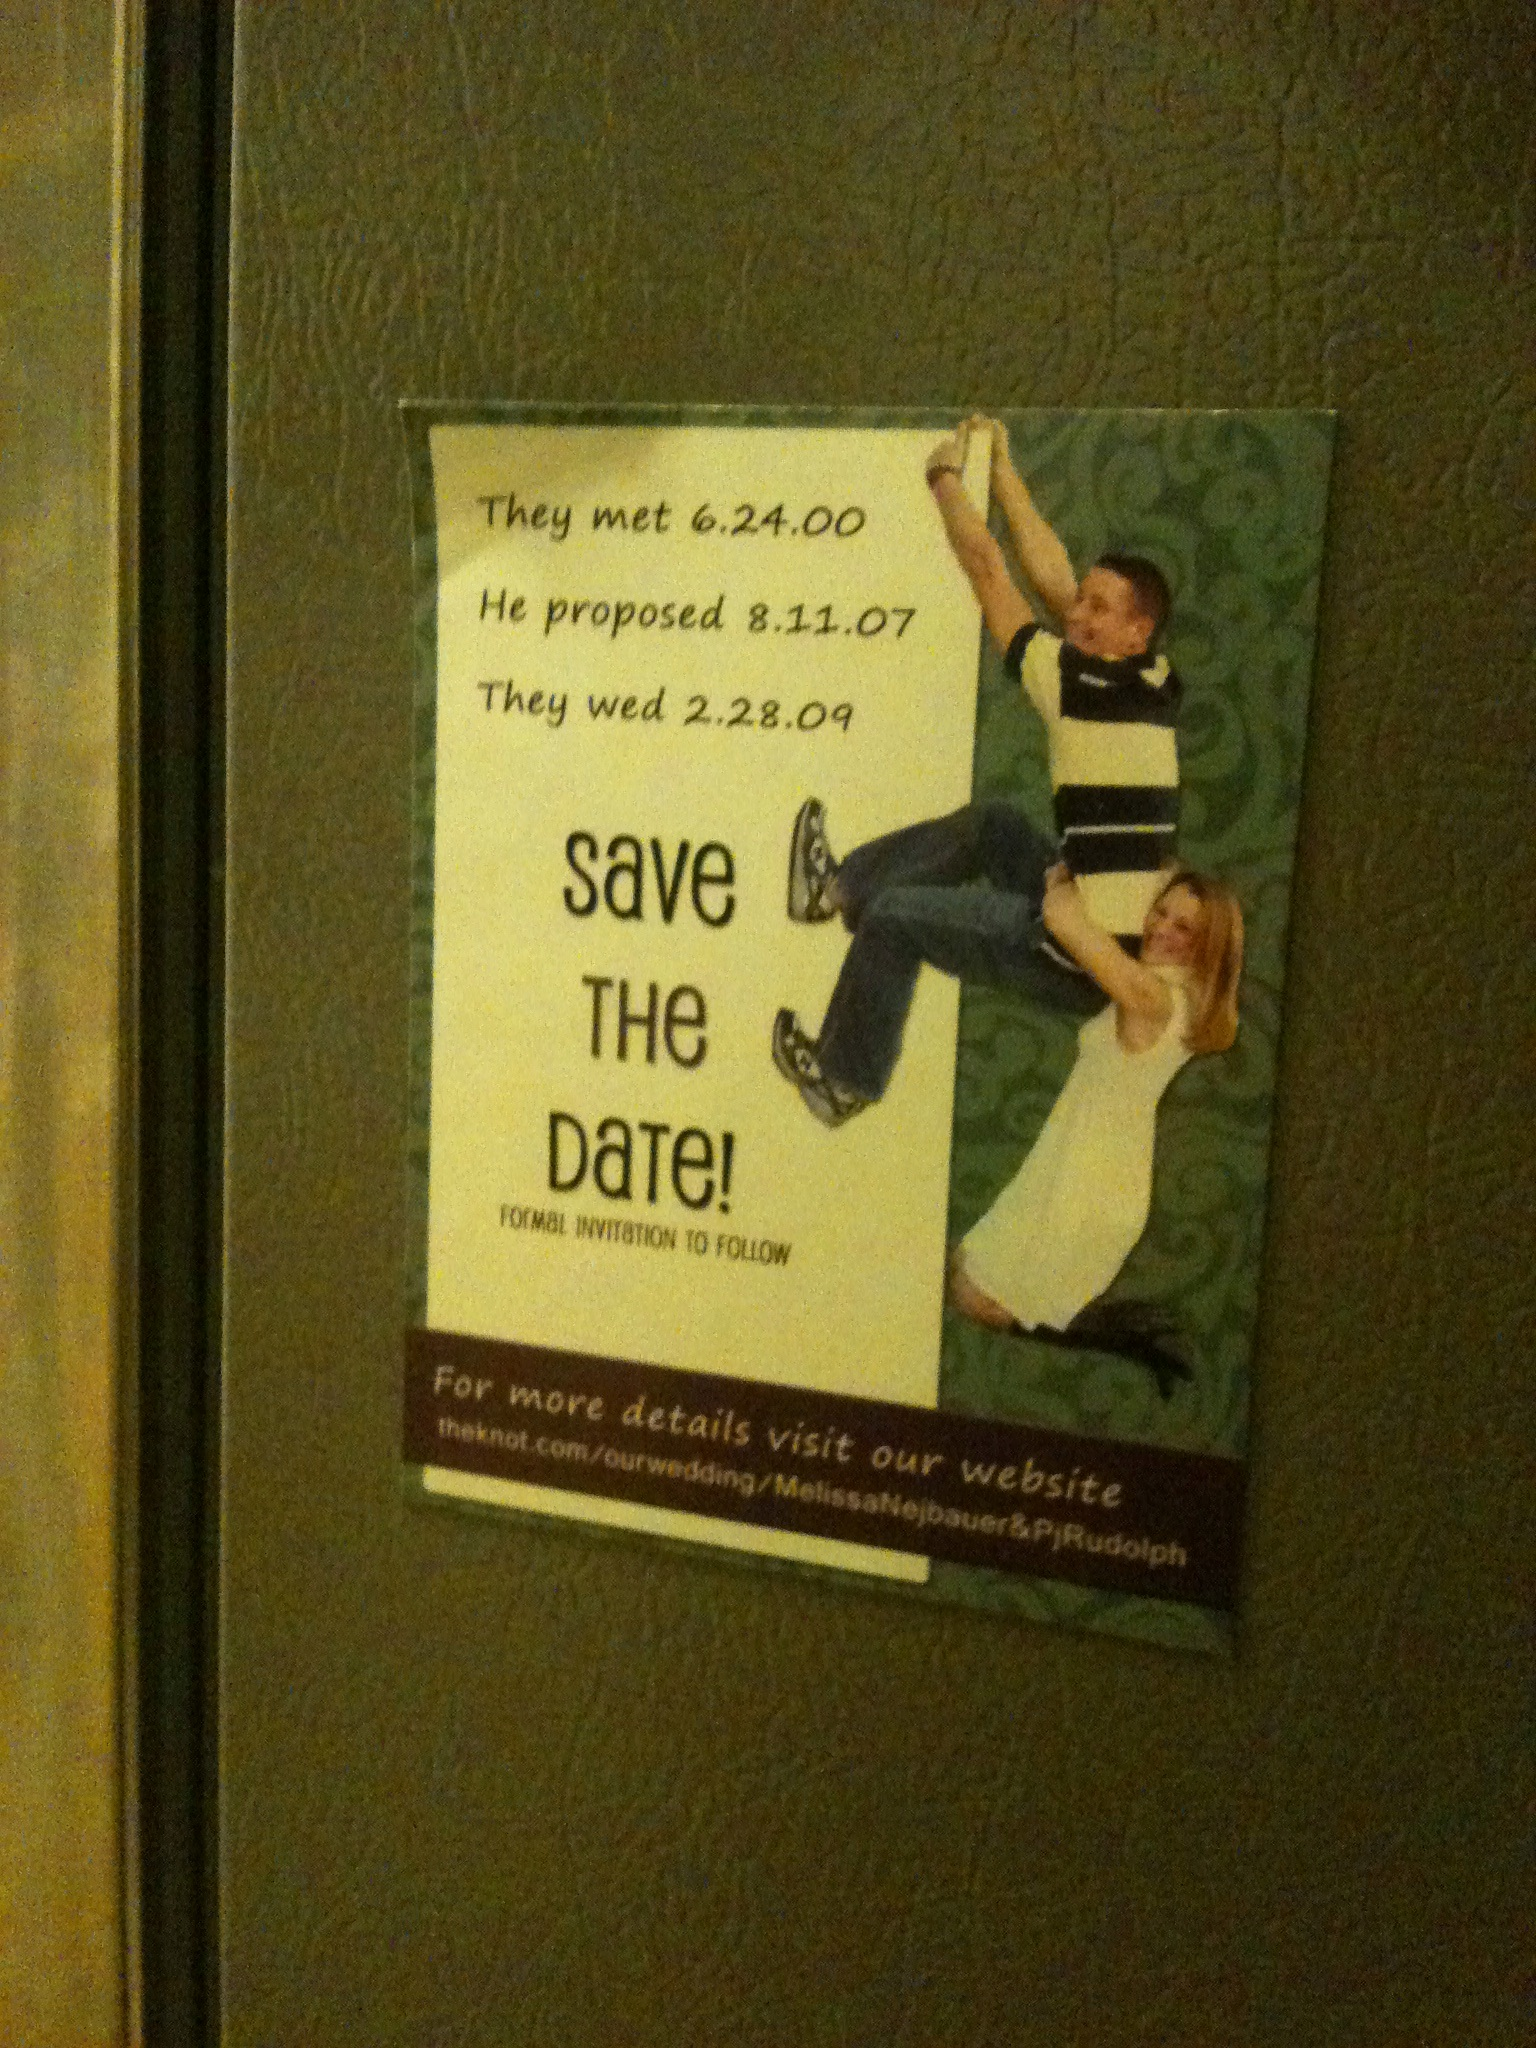 if you are interested in custom save the date invitations contact me